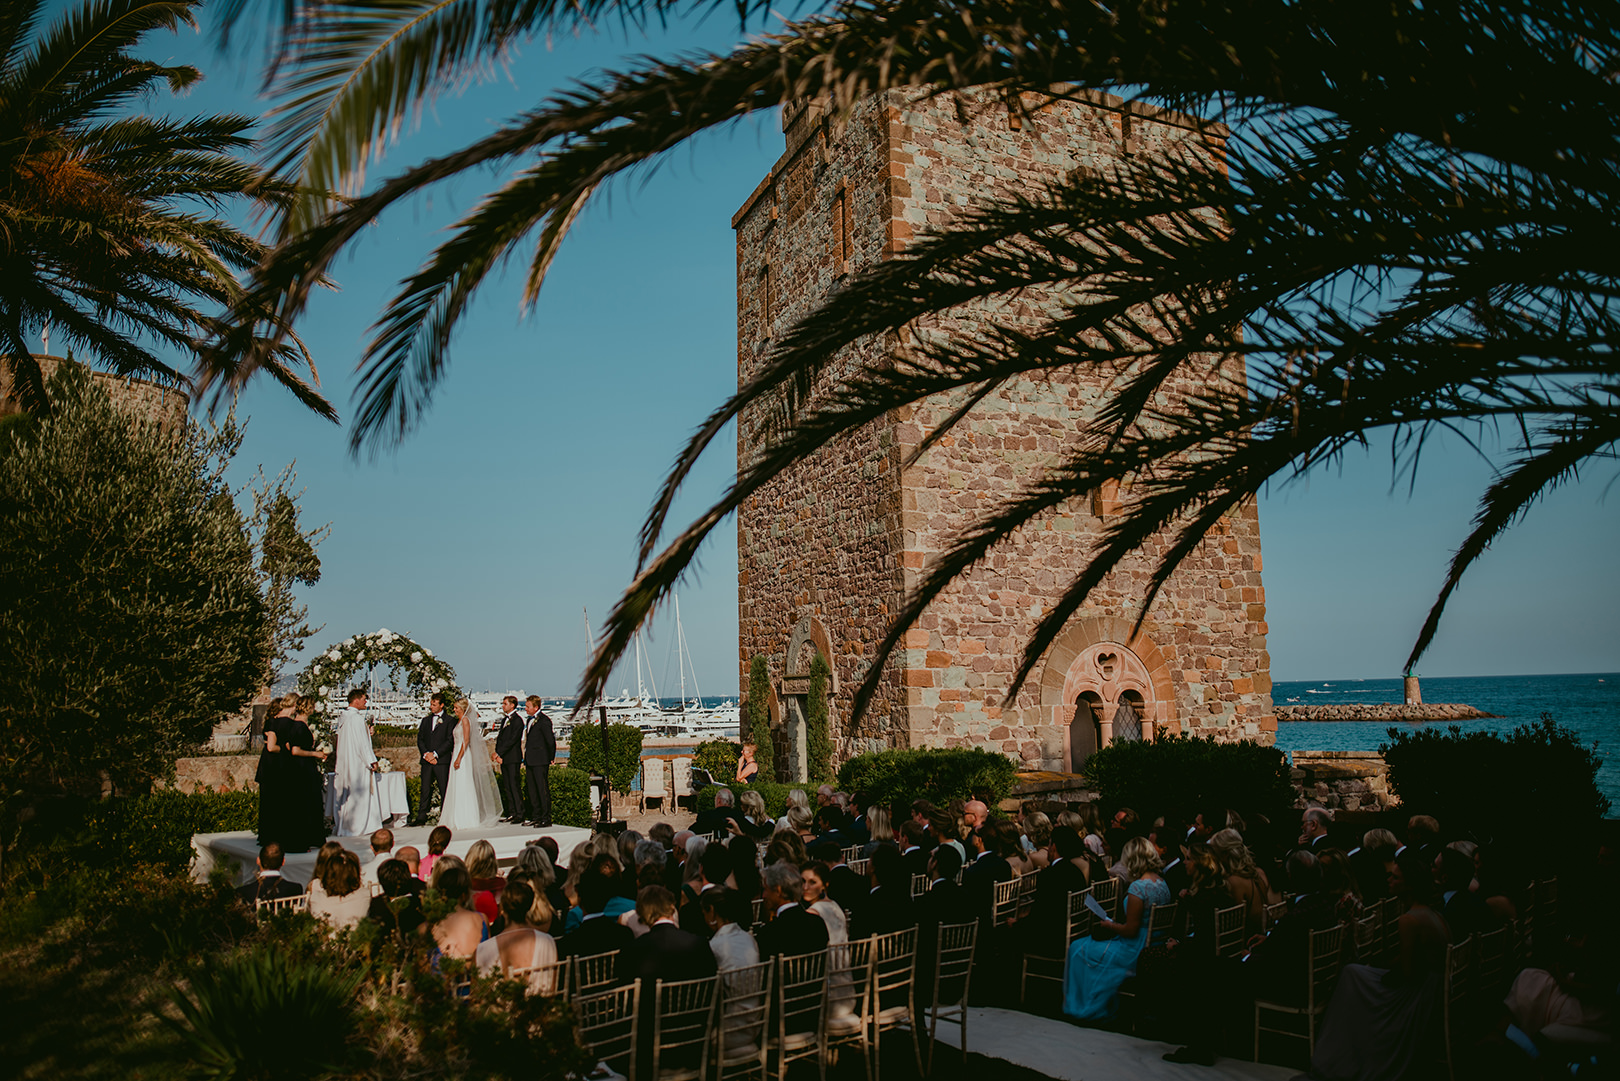 Wedding ceremony in Cannes France